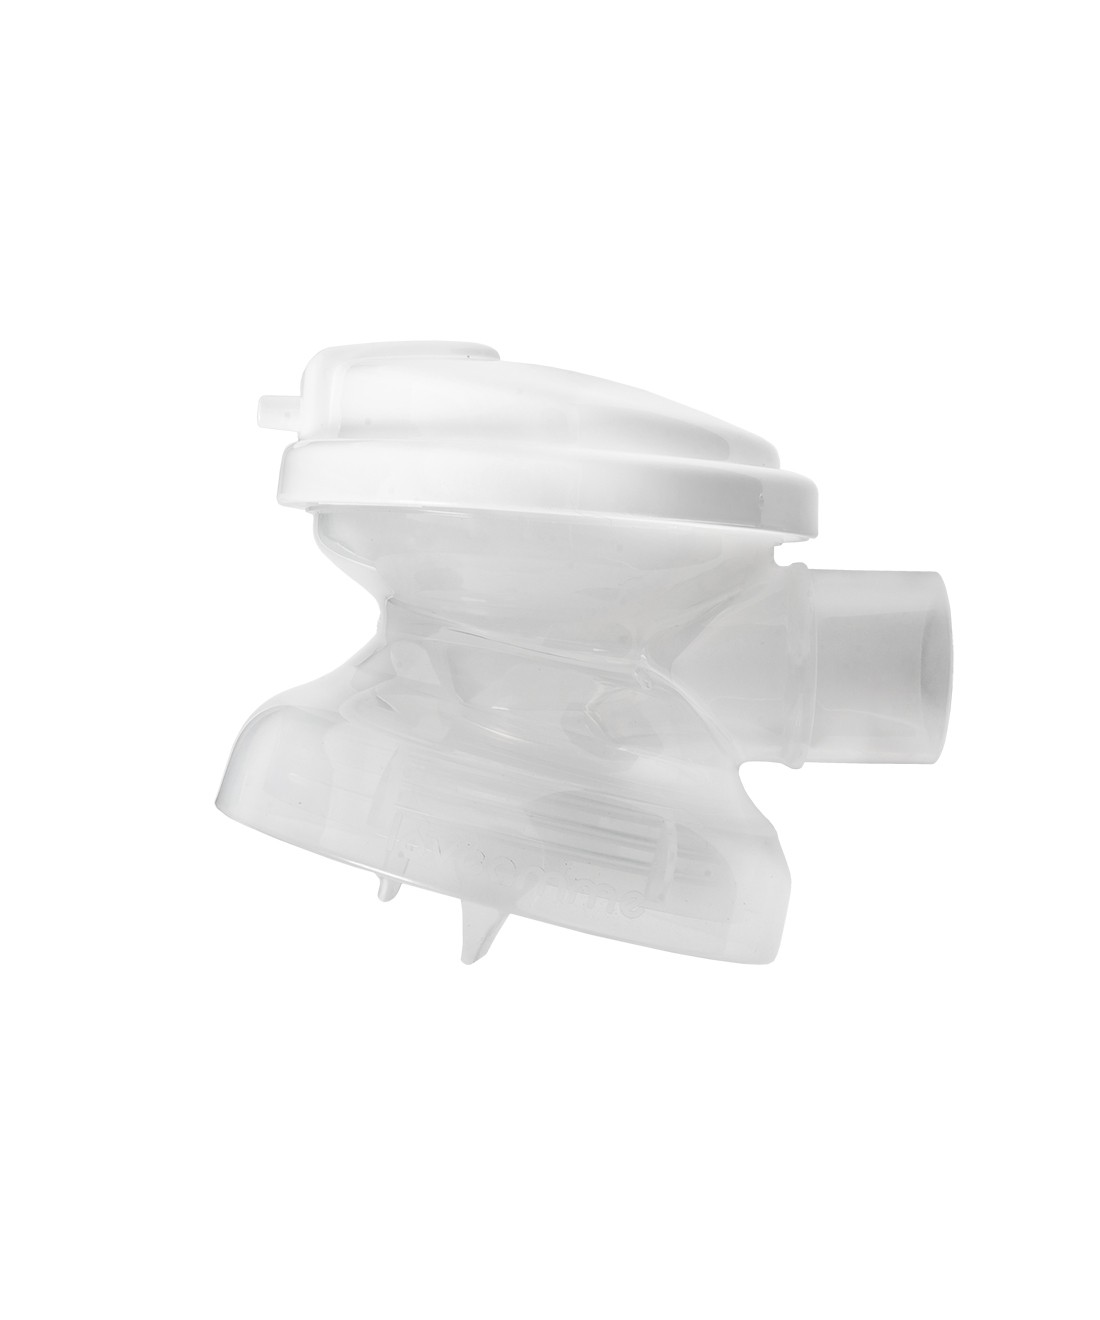 LoveAmme Tommee Tippee T-Joints - 2 pcs